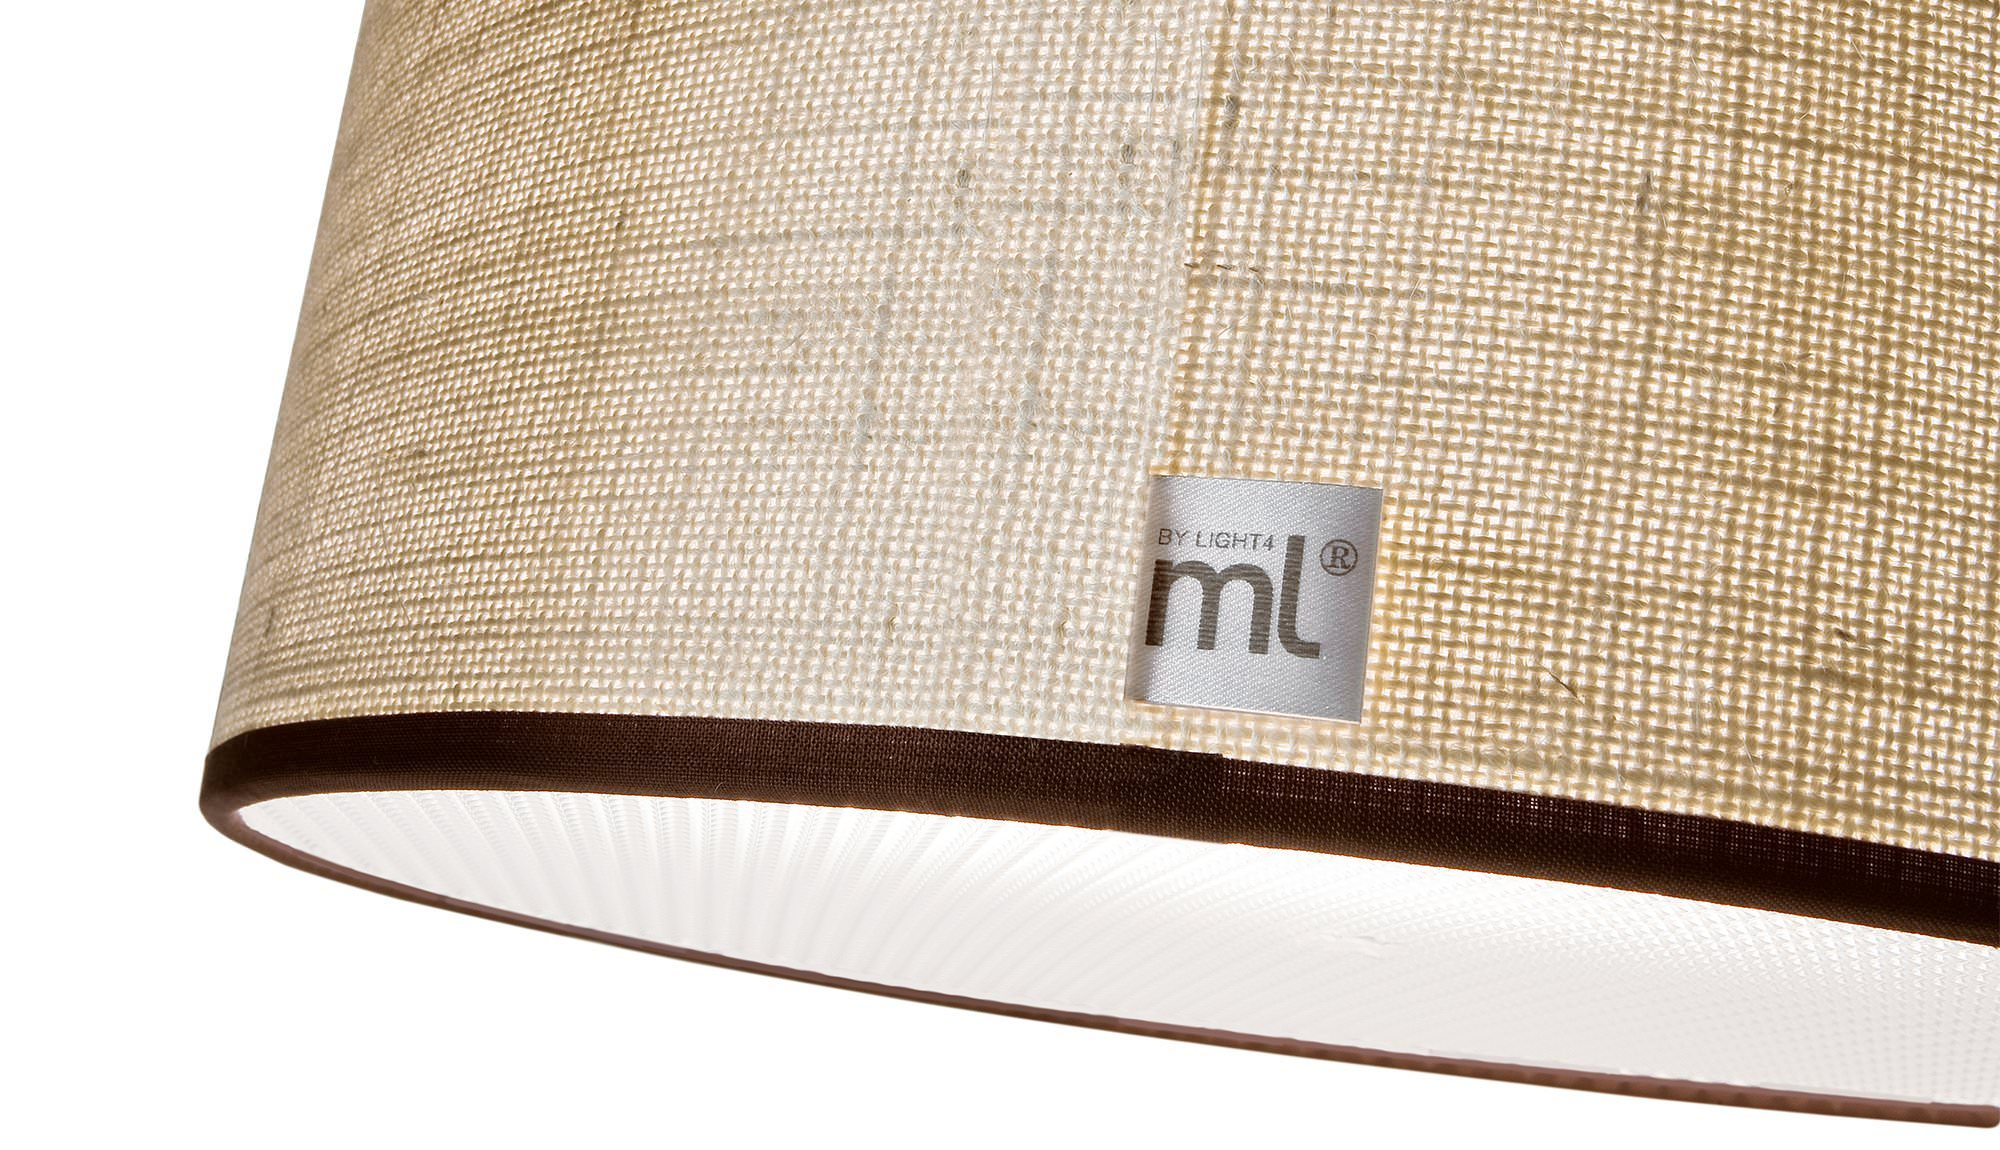 Itama Light 4 Mlampshades 06